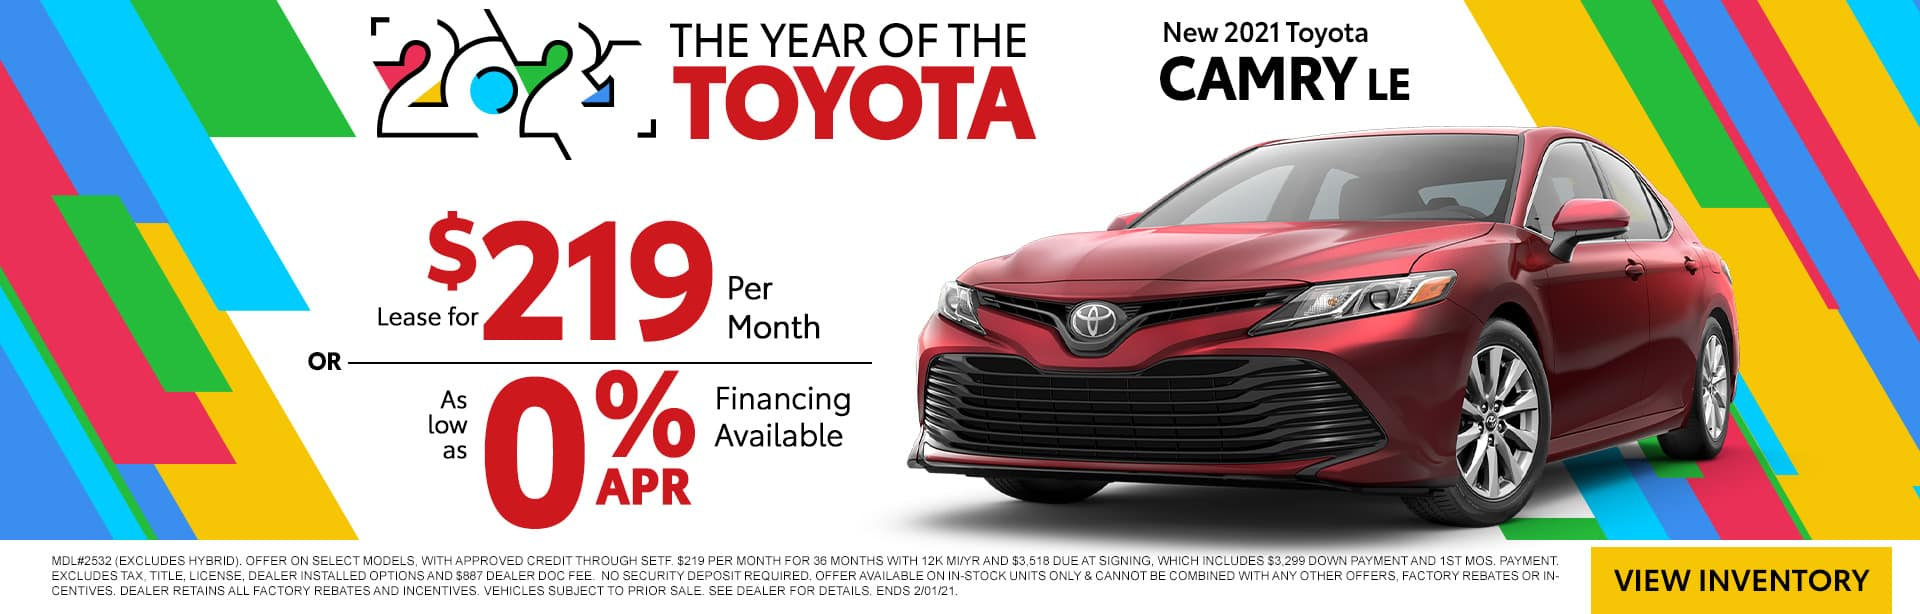 NEW 2021 TOYOTA CAMRY LE | THE YEAR OF THE TOYOTA